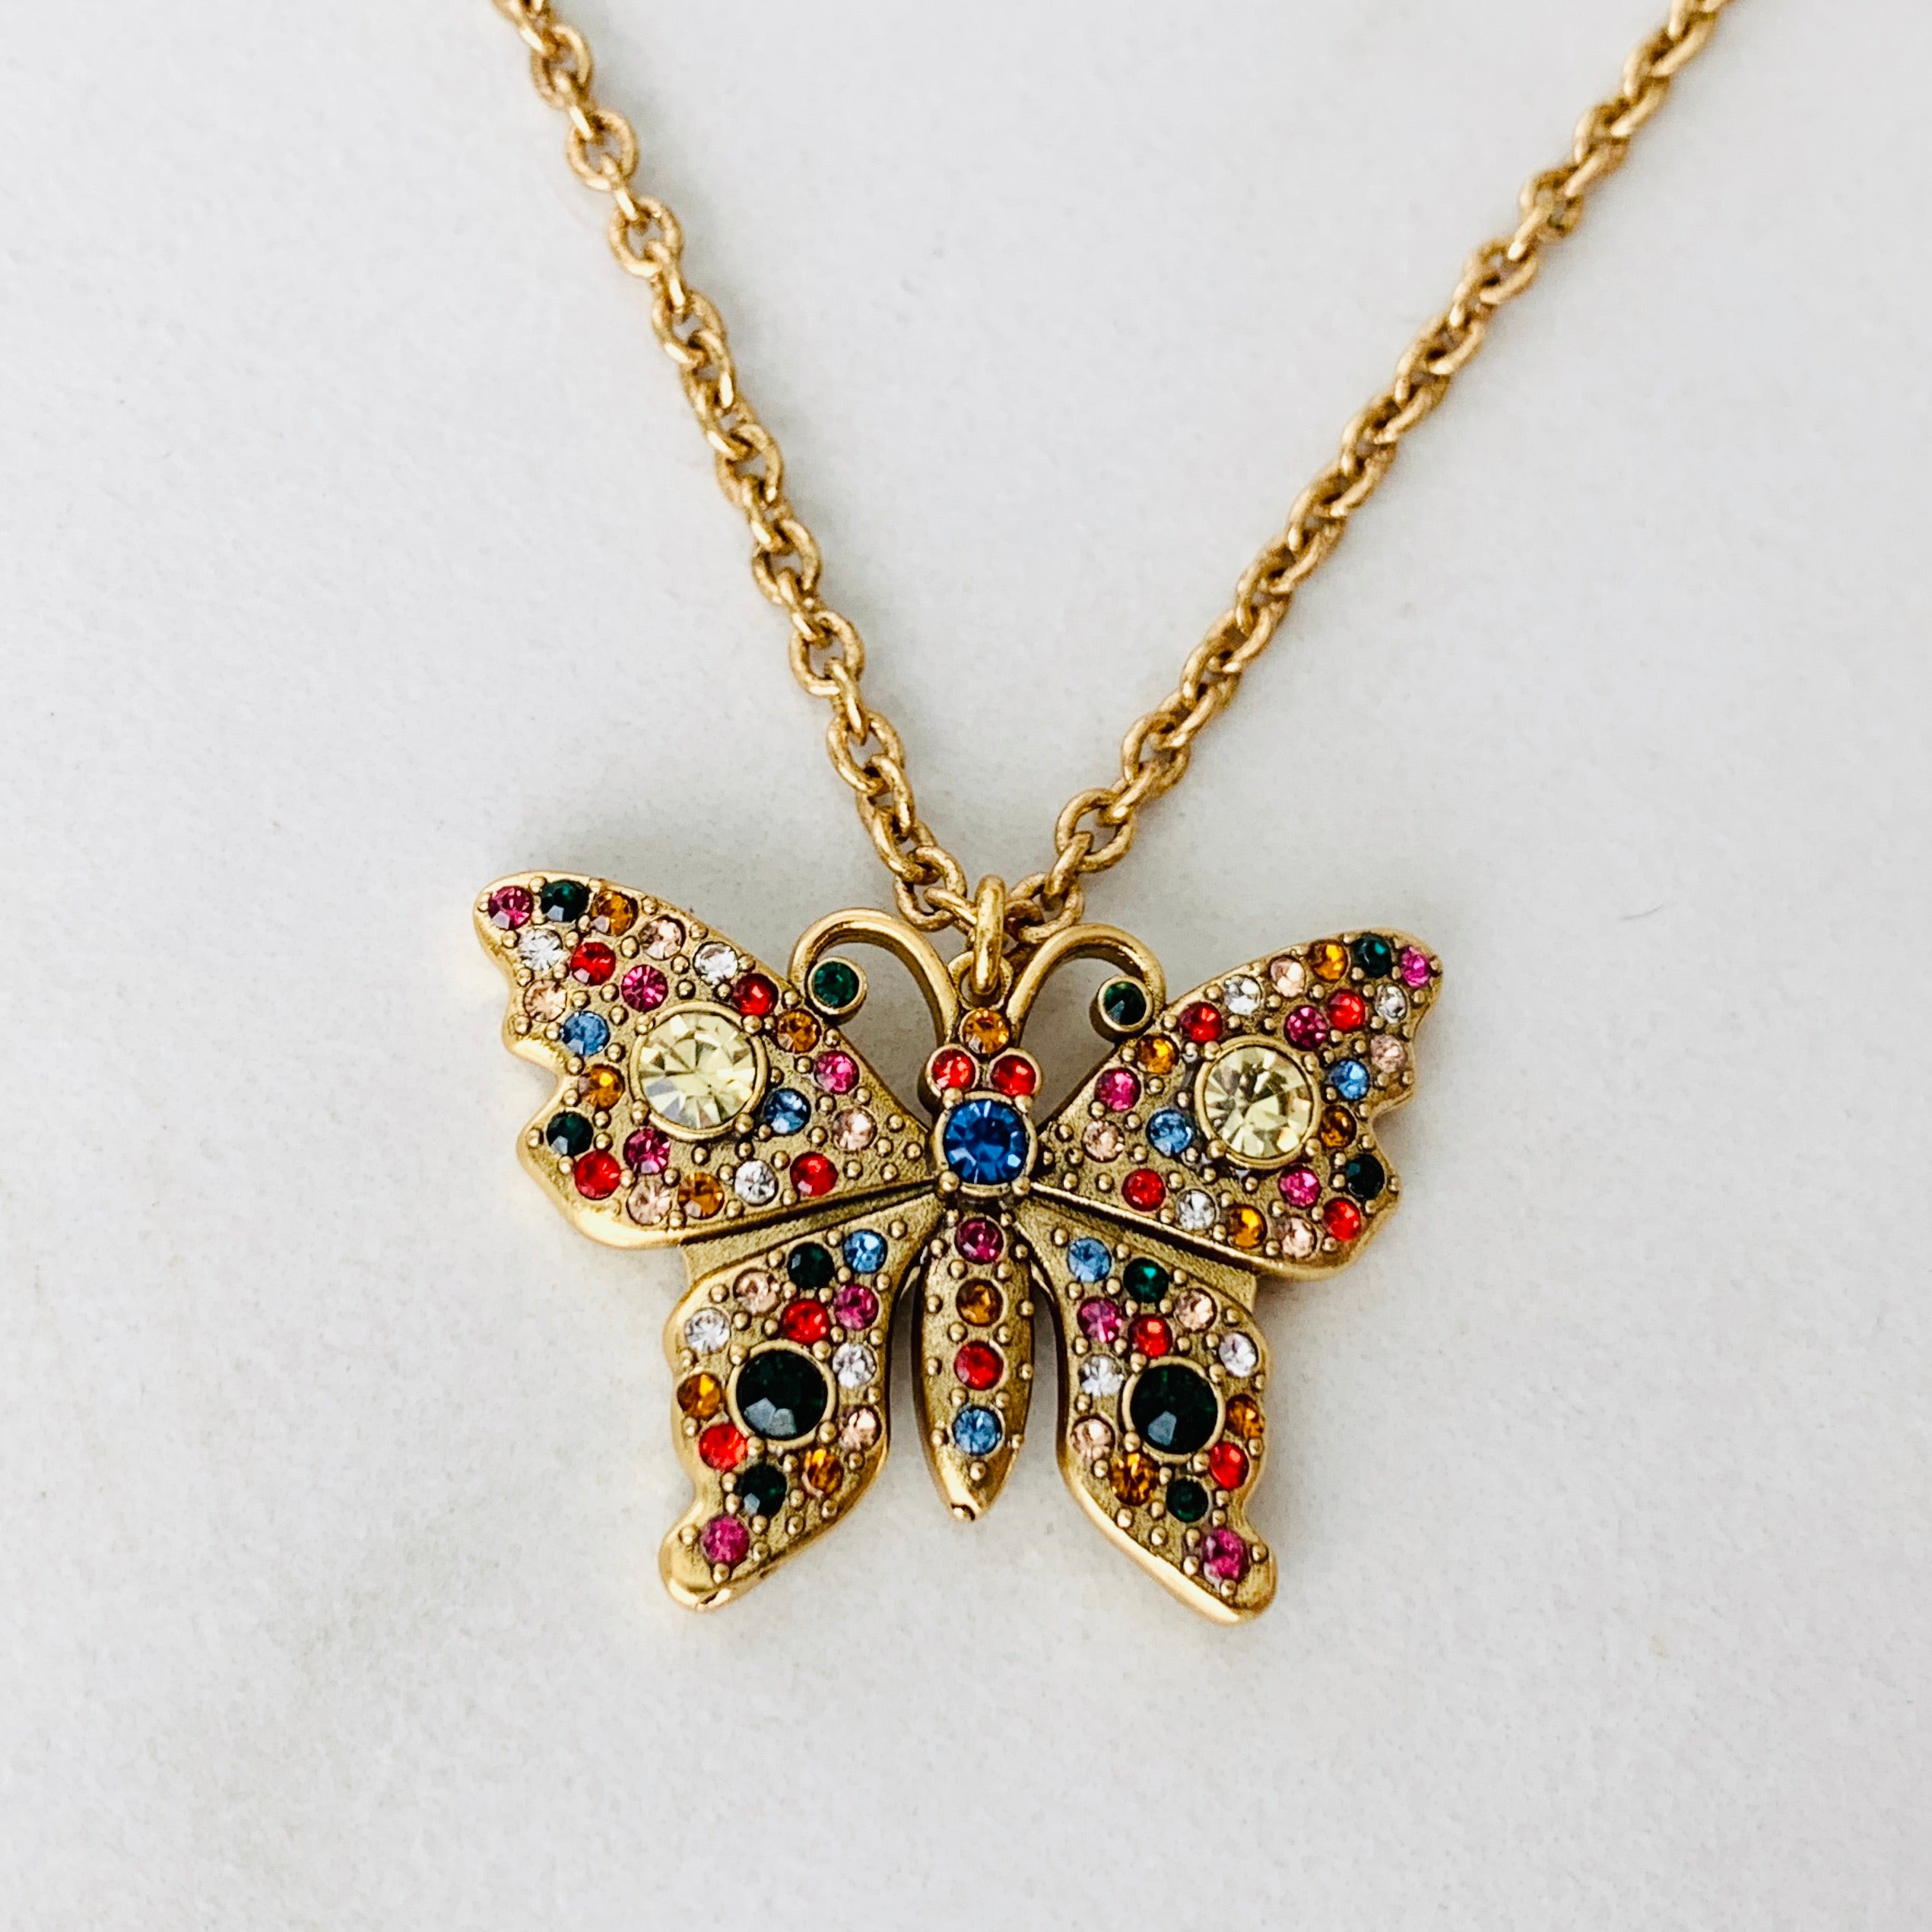 GG Butterfly Necklace